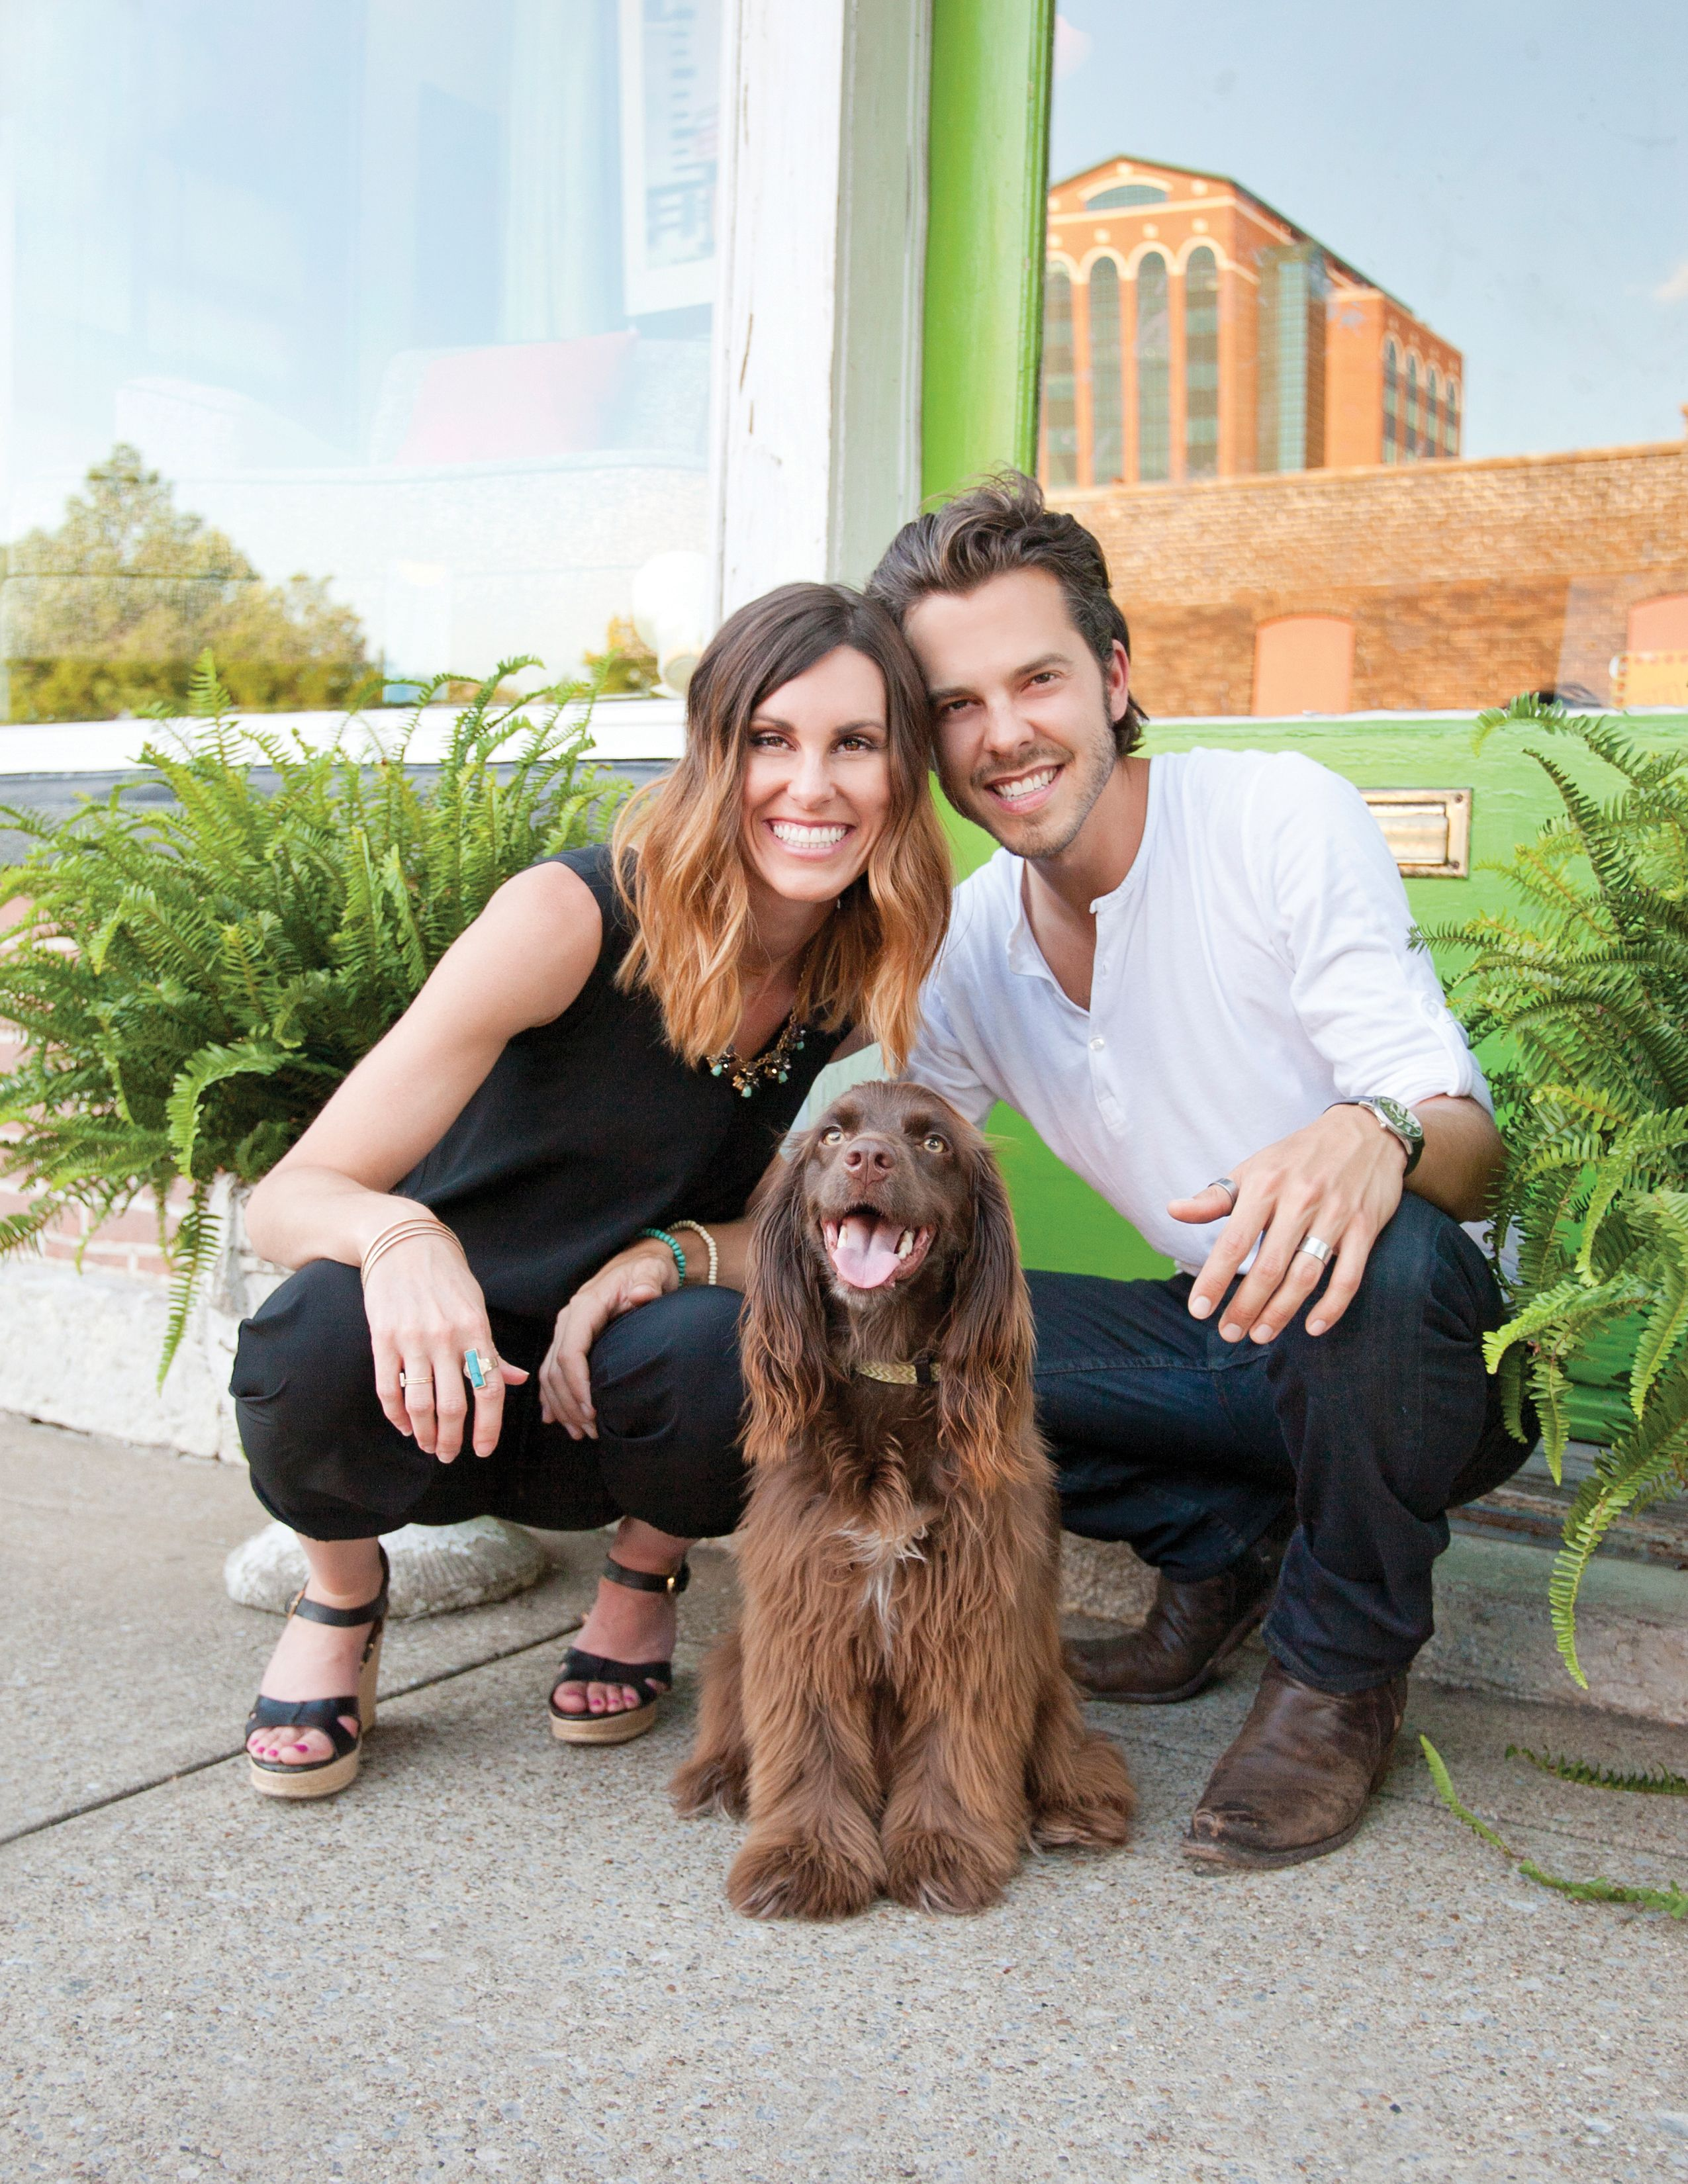 Behind The Scenes Of Our Cover Dog Shoot Latest Topics Lifestyle Wellness Welfare Dogs Dog Search Scenes